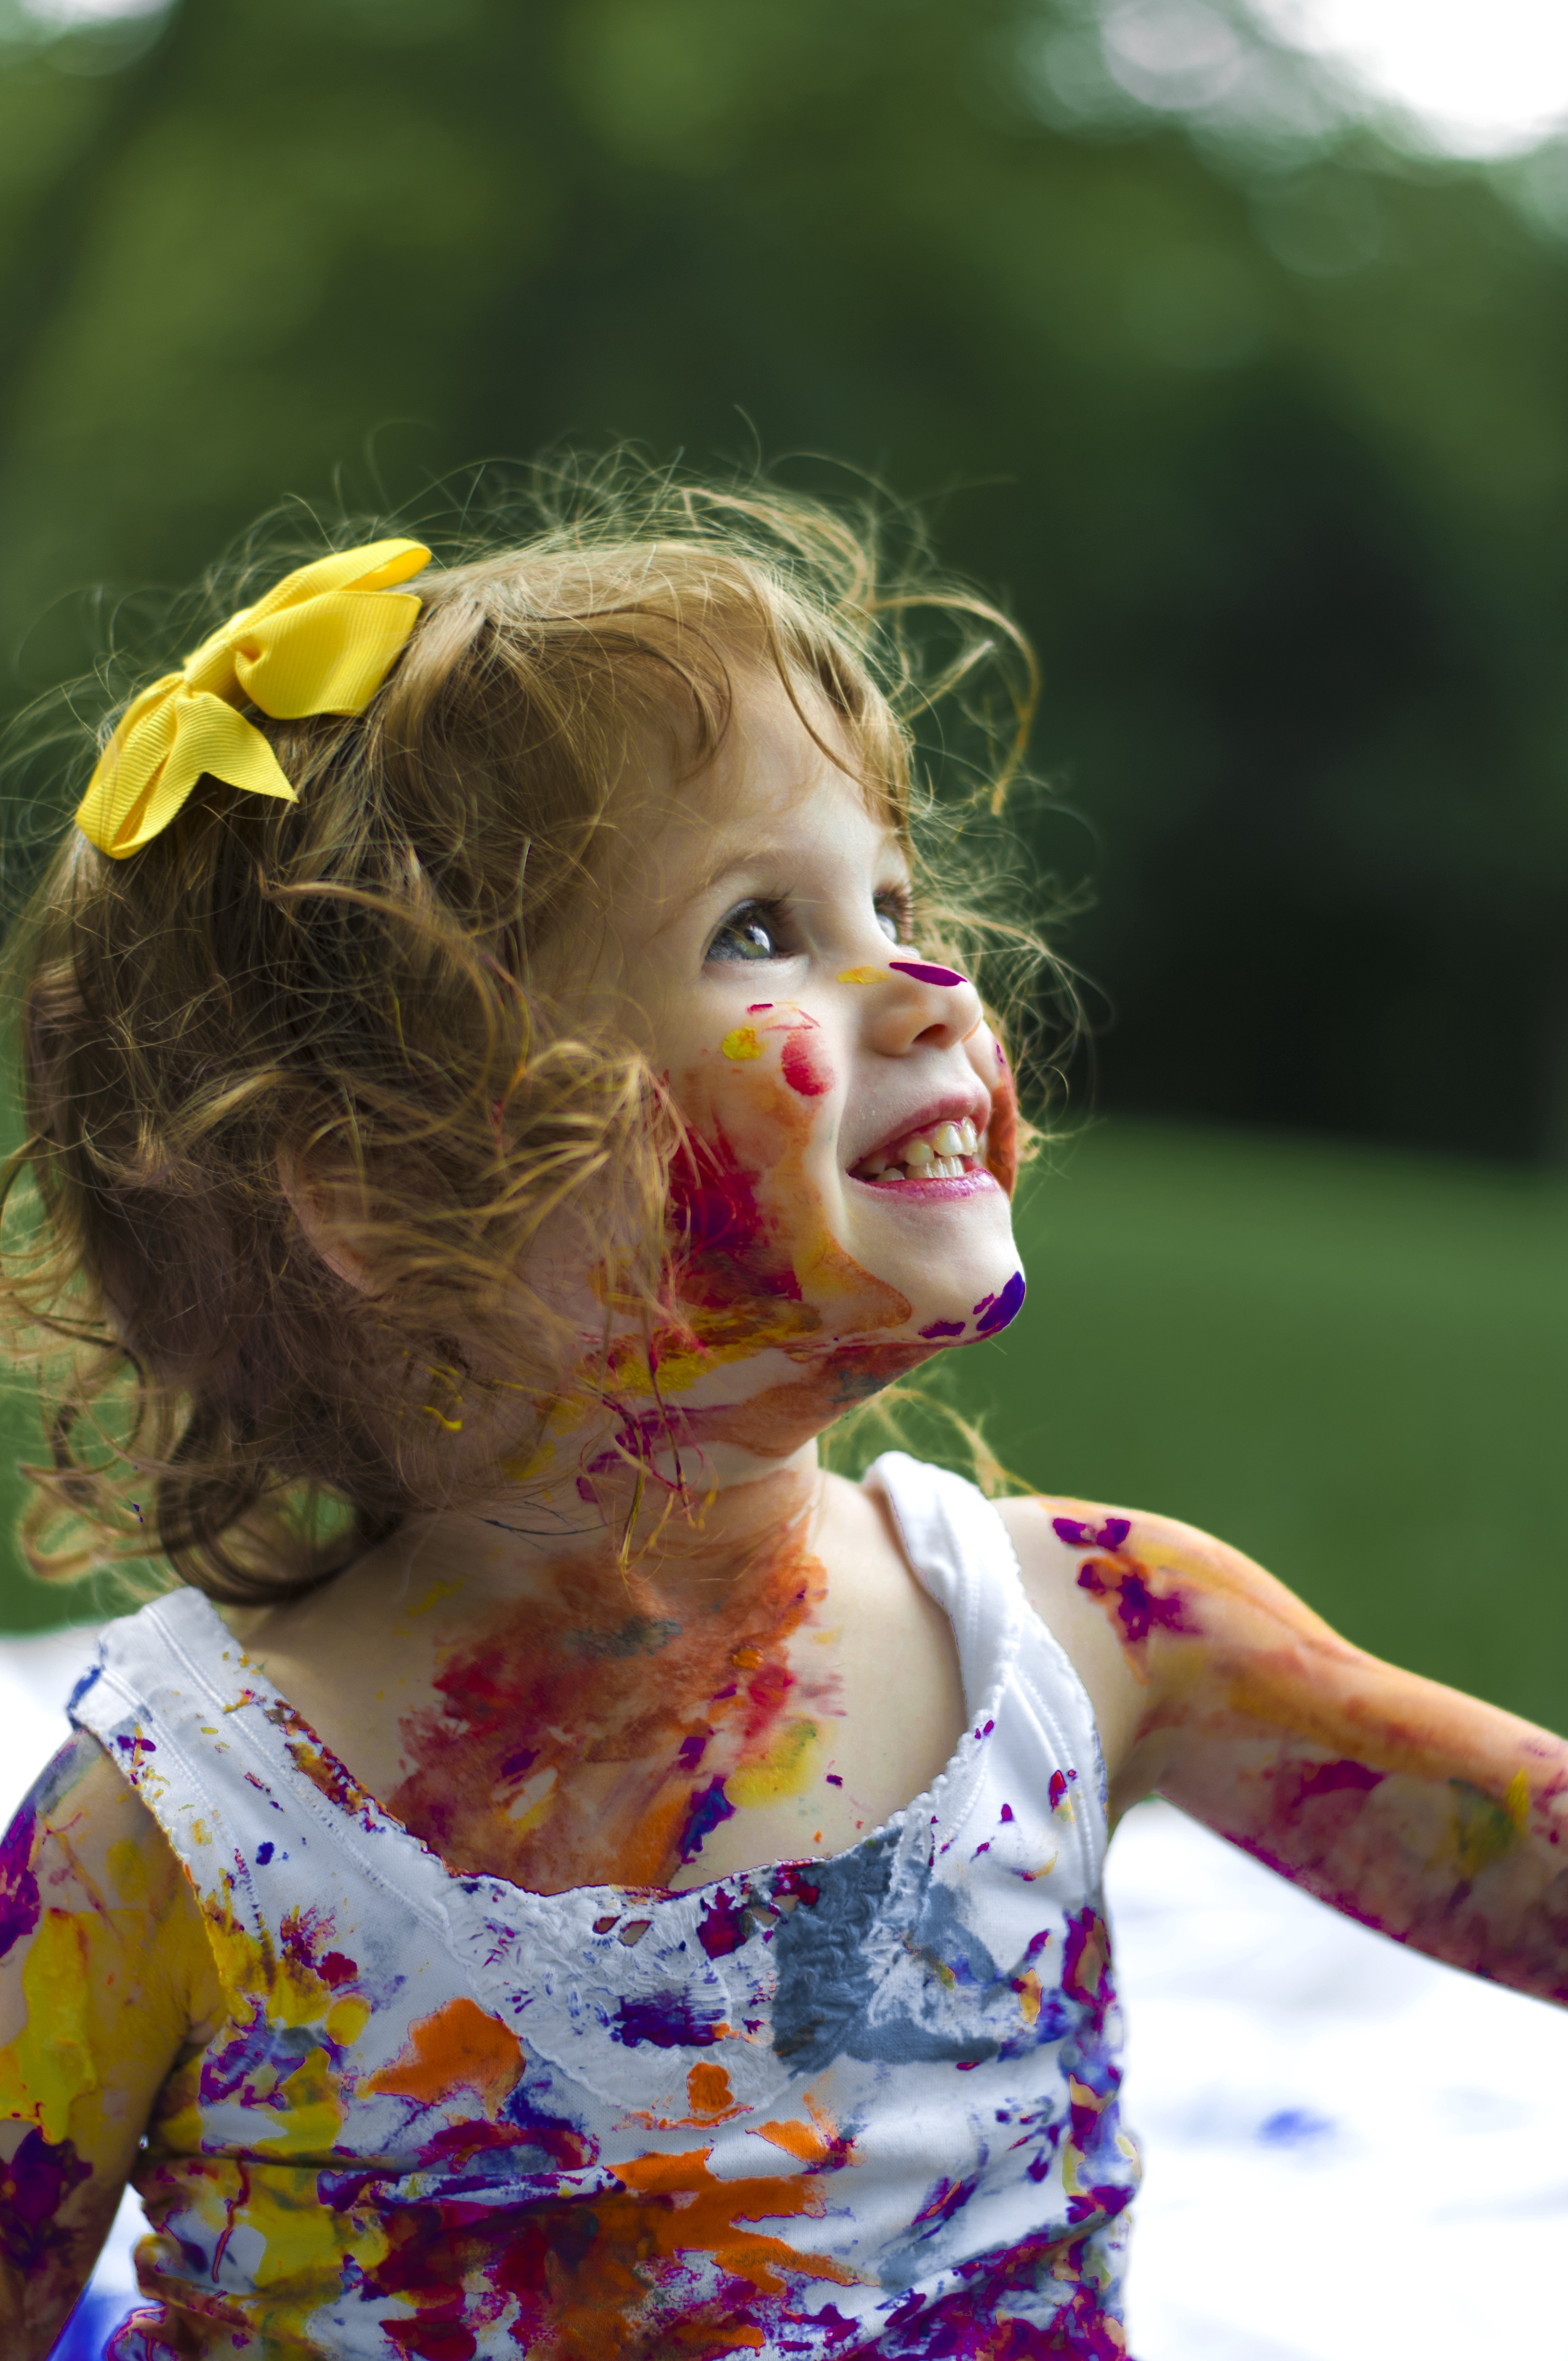 Photo of a child covered in paint, smiling up at someone off-camera.